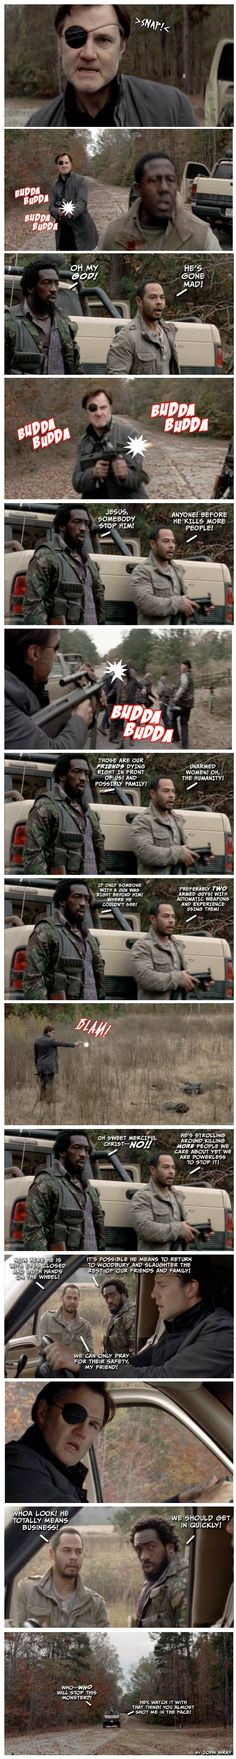 The Walking Dead season 3 episode 16 - Welcome to the Tombs gifs and memes #TickingTimeBomb - PandaWhale